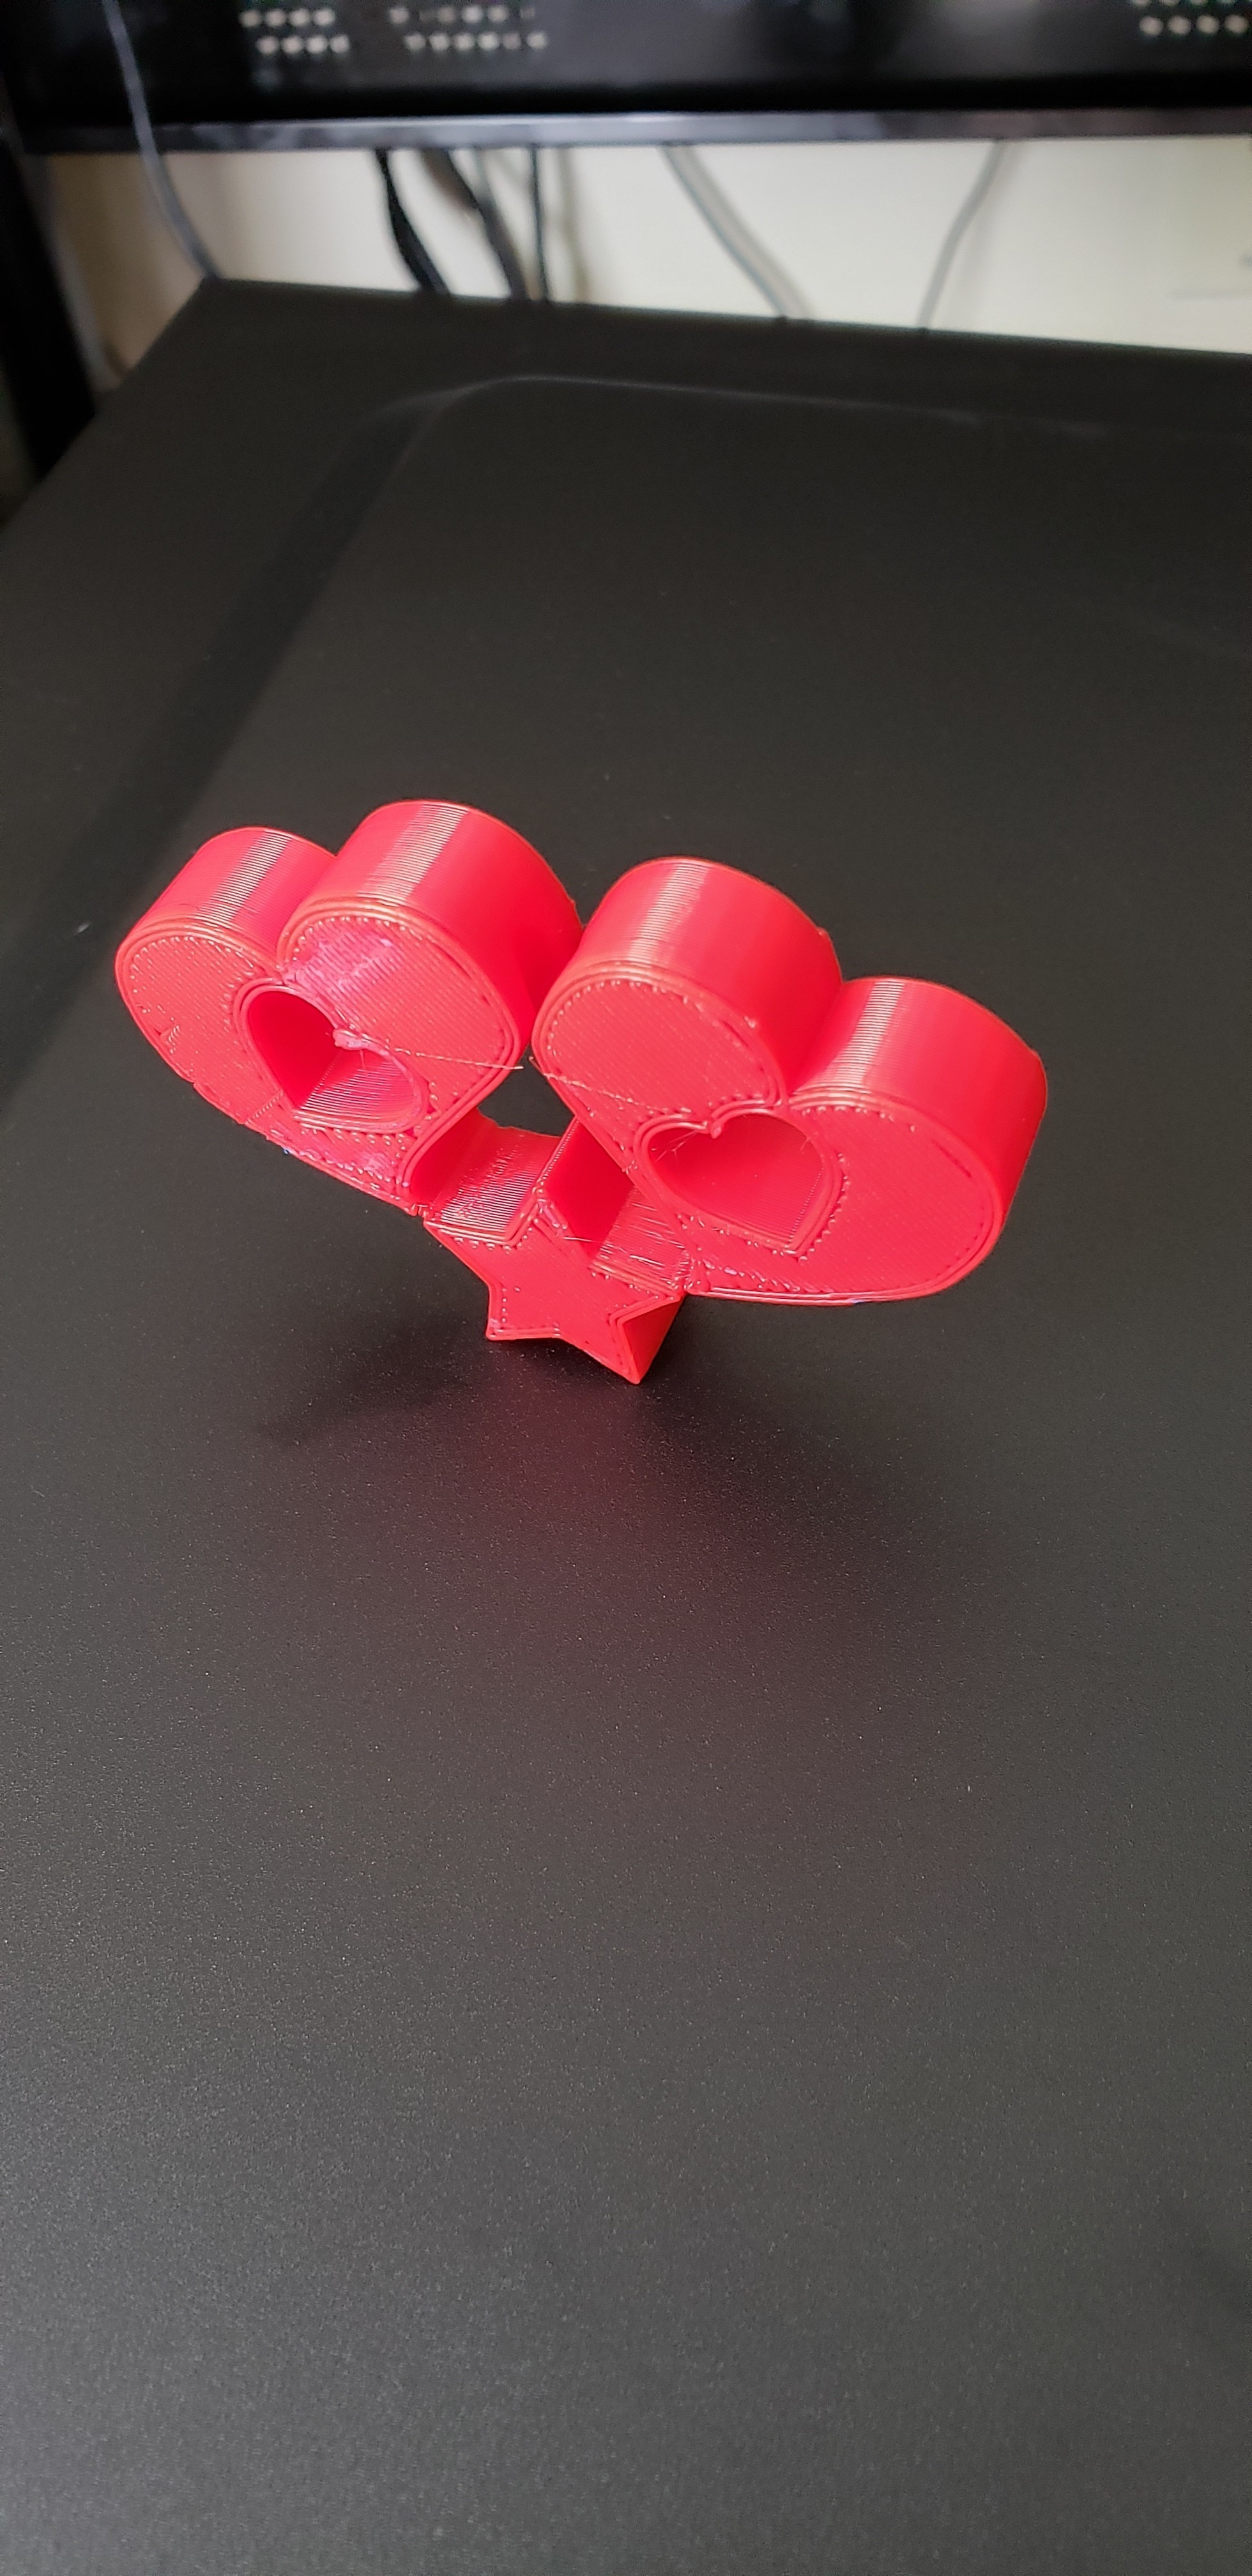 heart3.jpg Download free STL file 2 Hearts and a star light pull • Model to 3D print, ED2014